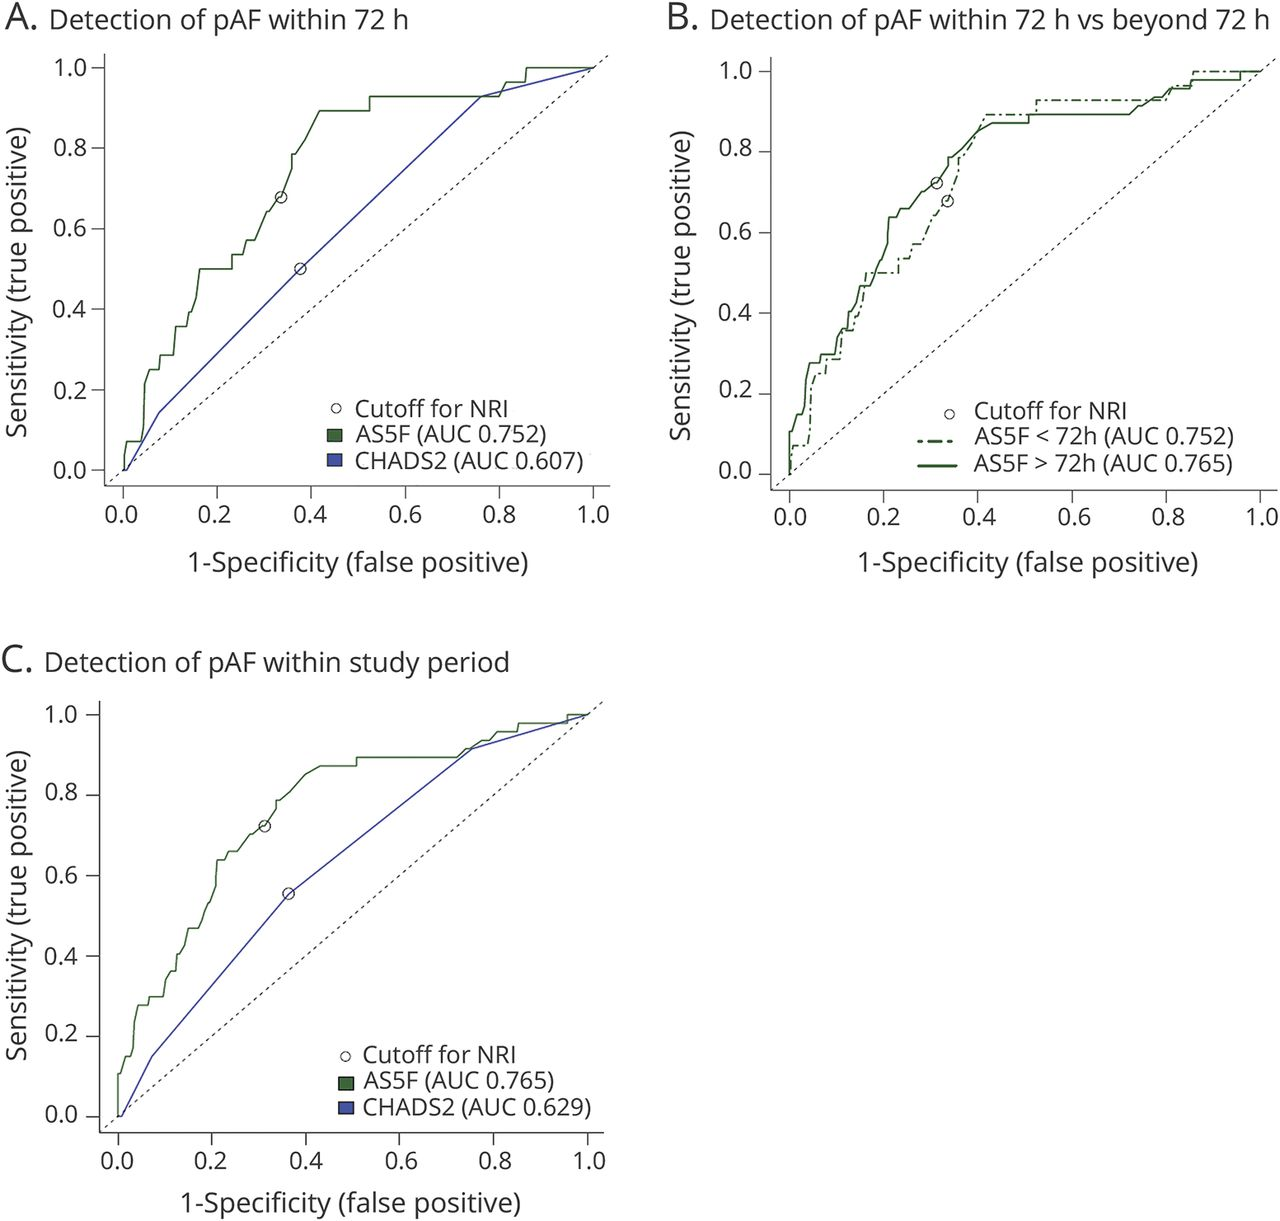 Development and validation of a score to detect paroxysmal